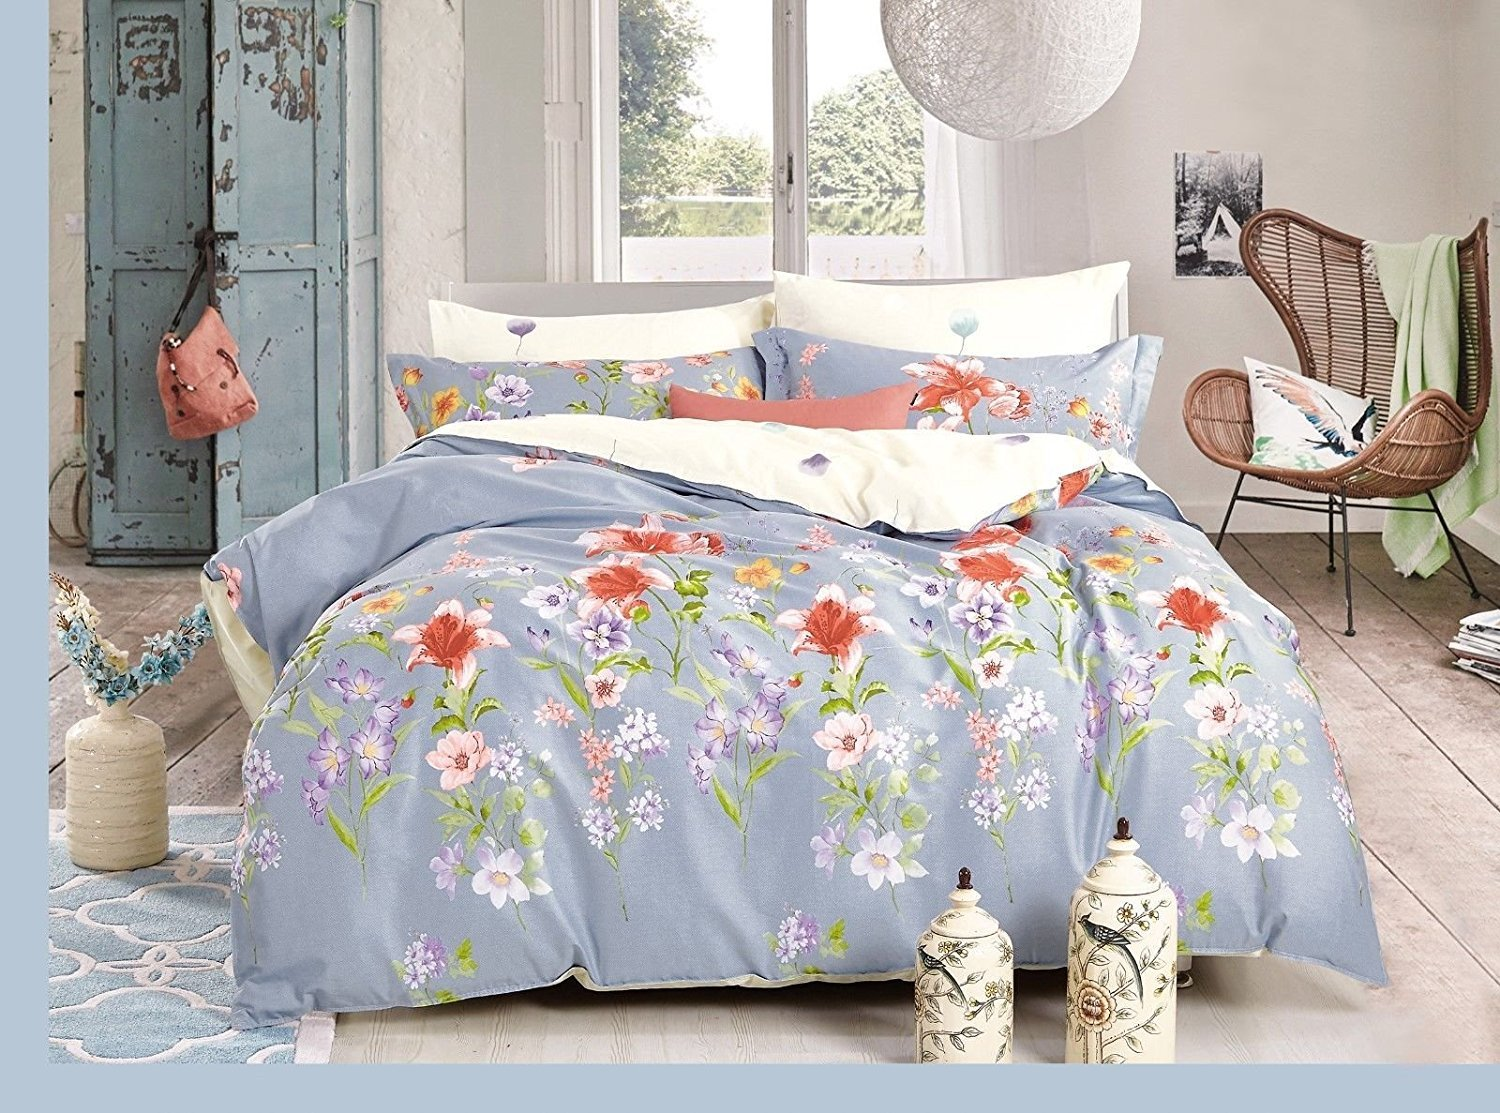 King Bed Duvet Set (Design 5)